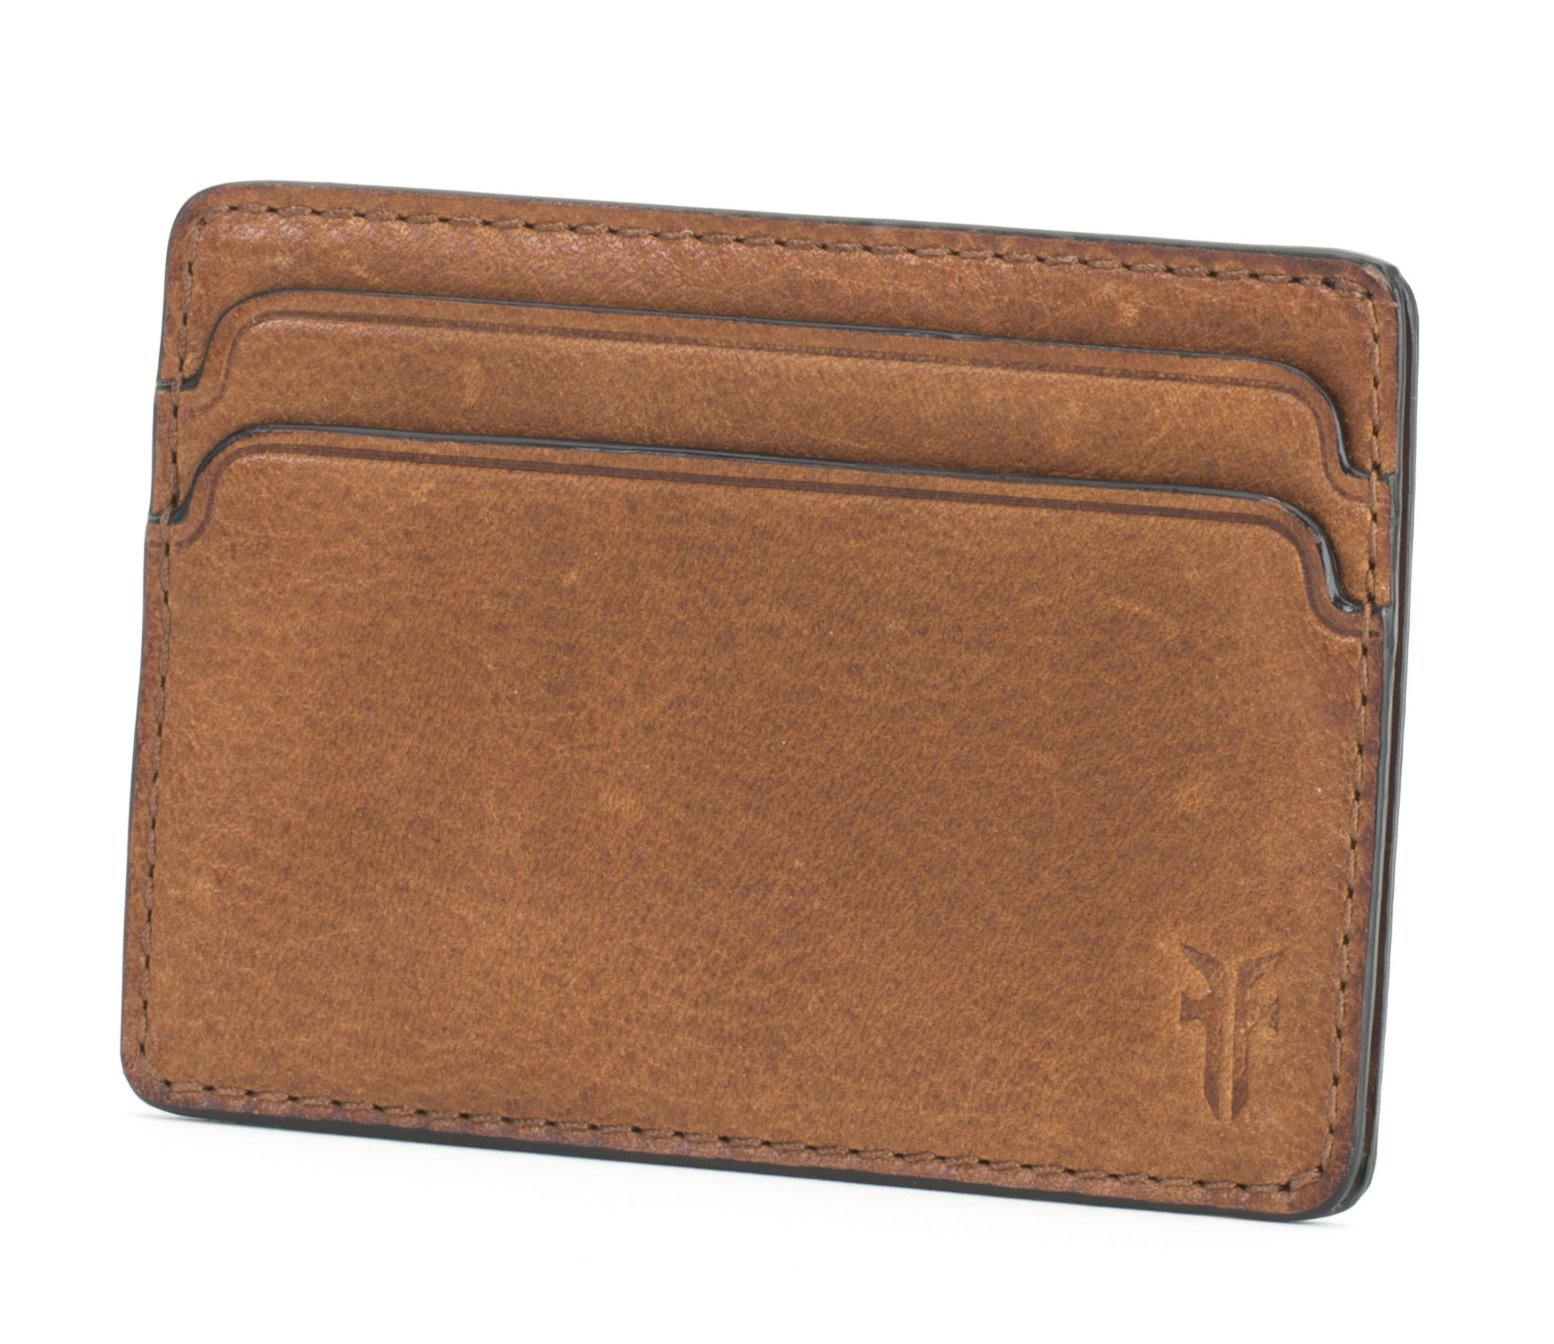 FRYE Men's Oliver Id Card Case, Cognac, One Size by FRYE